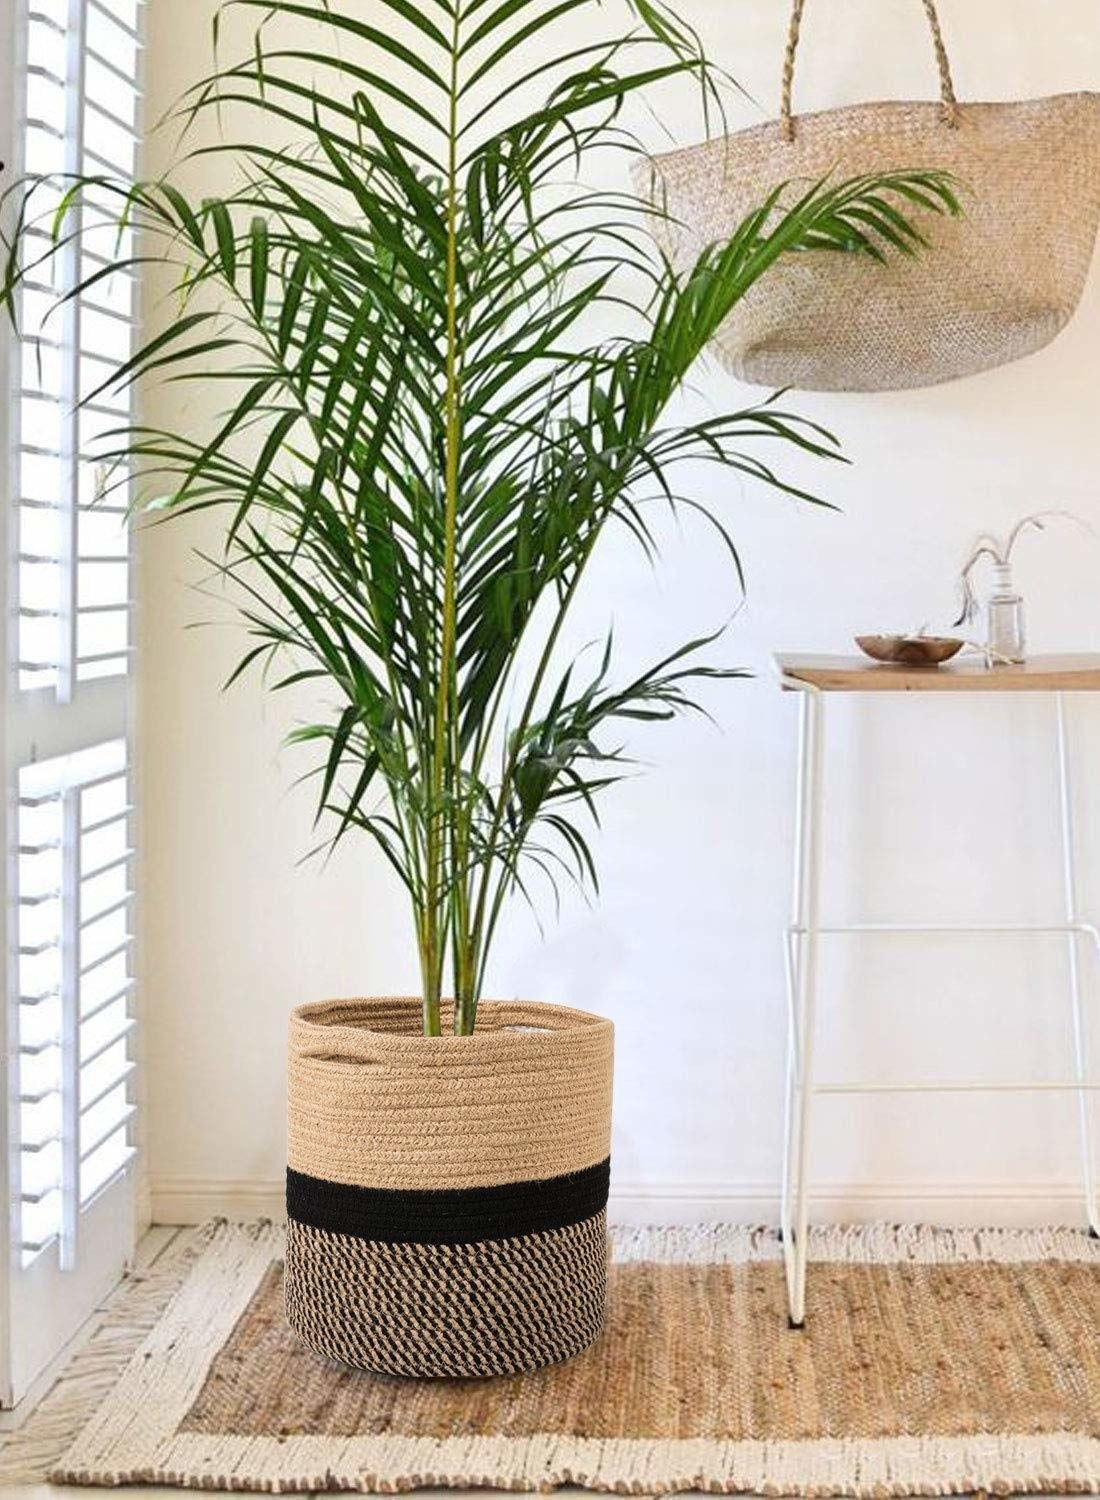 A grey, black and beige jute planter with a plant in it on a rug beside a ladder